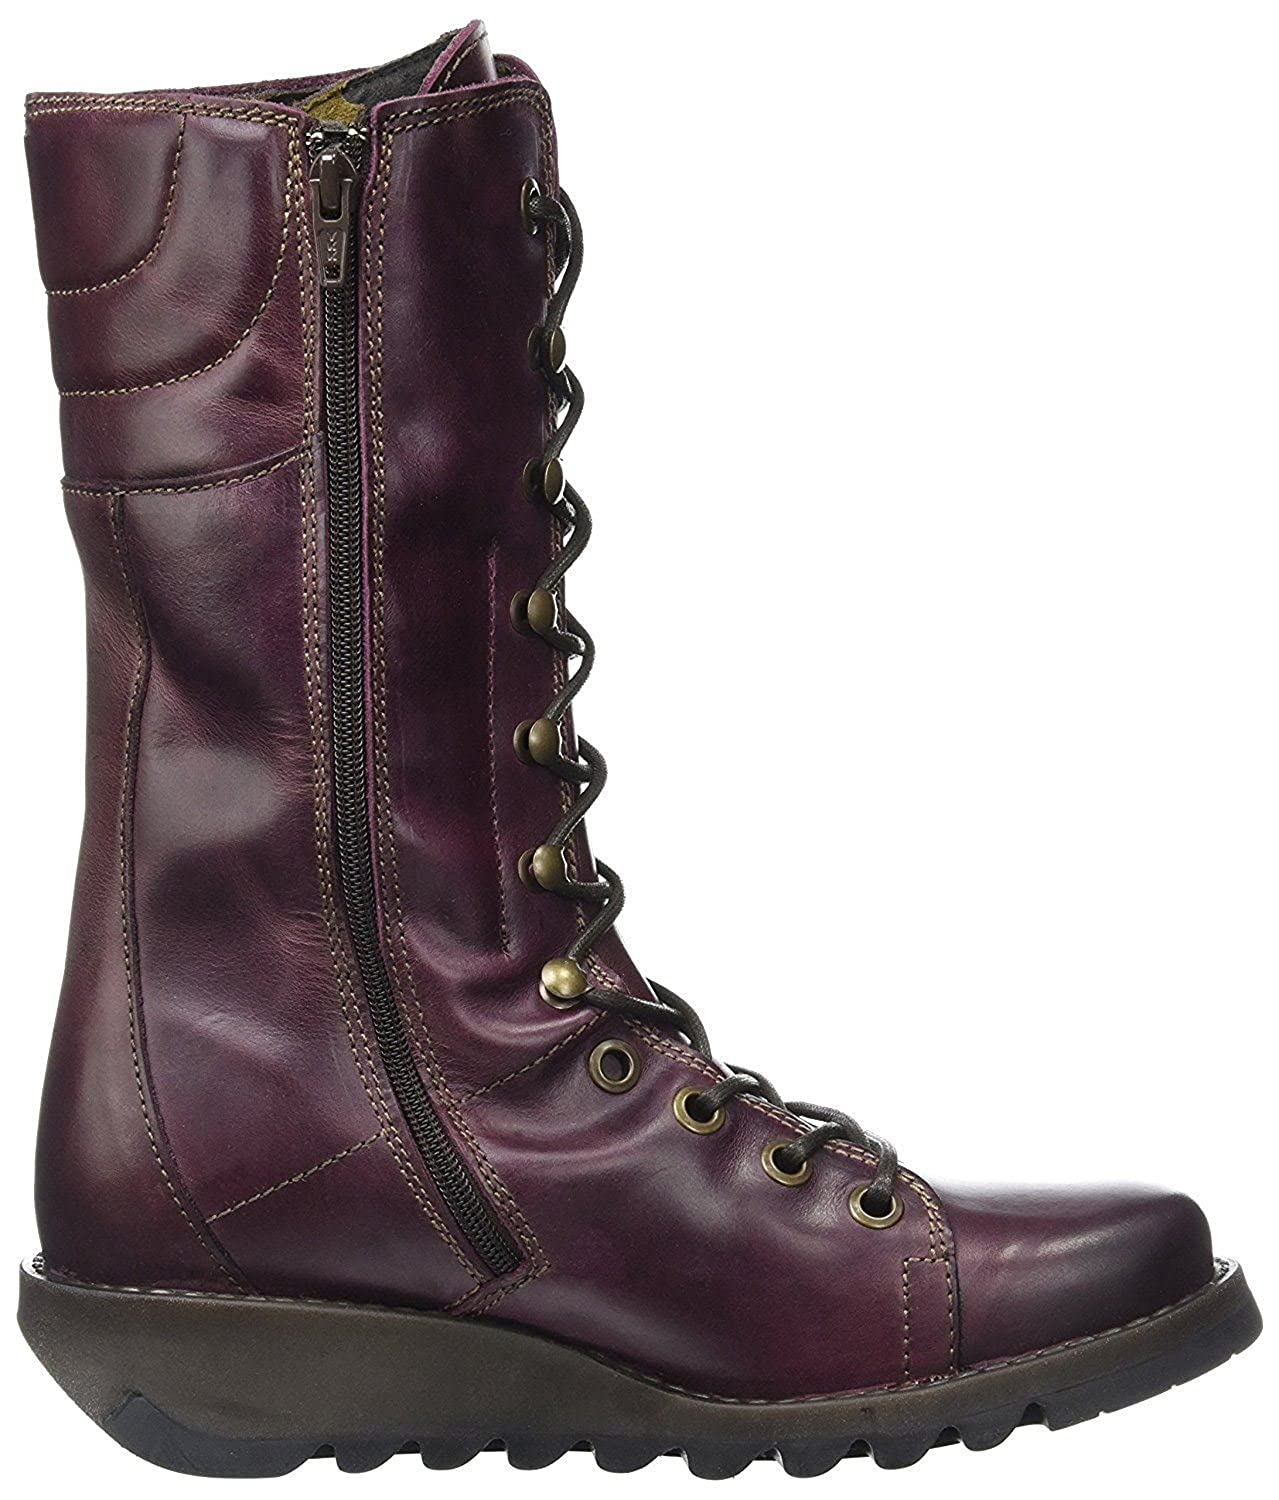 Womens Seca860fly Boots FLY London Store Cheap Price Visit New LyLseI